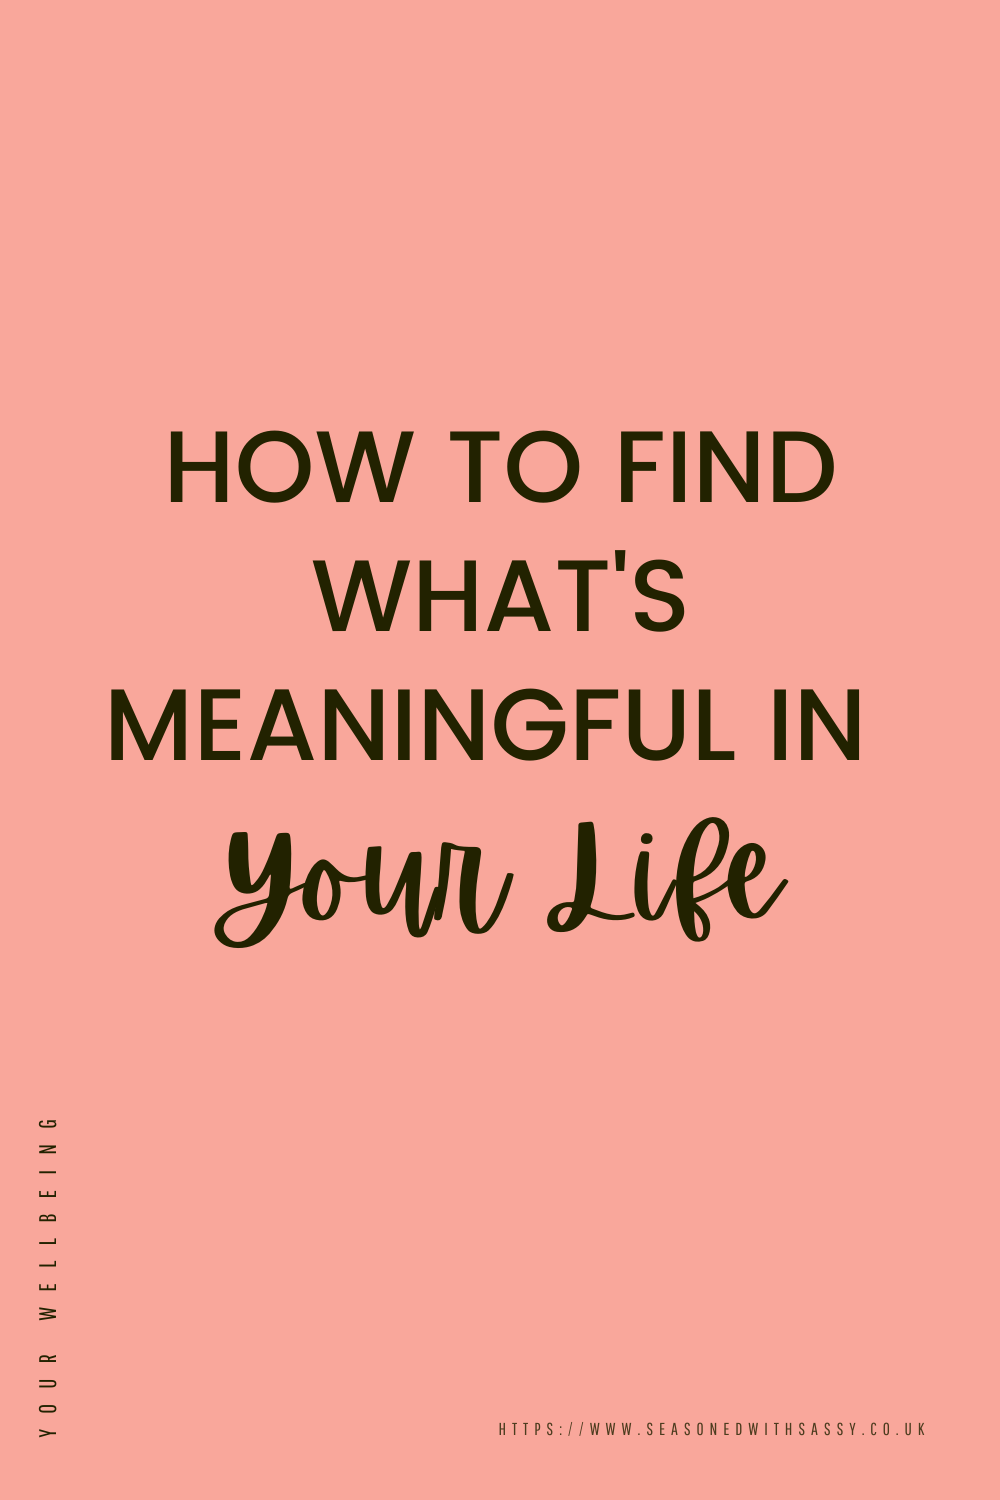 How to Find What's Meaningful in Your Life